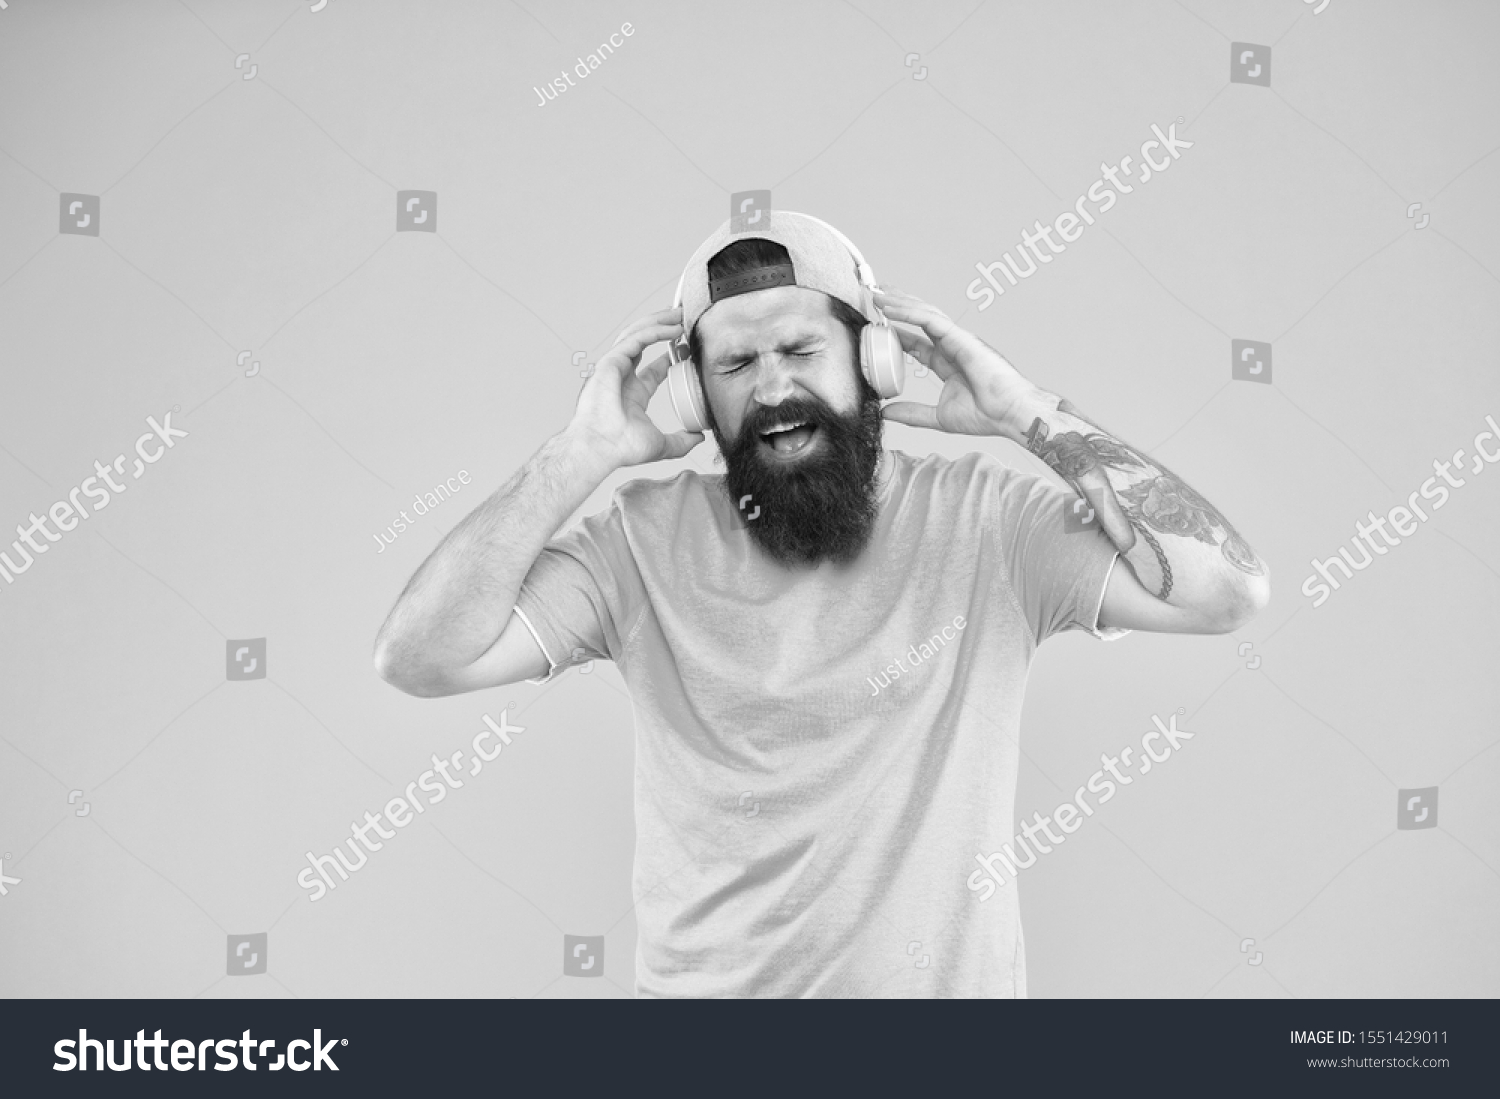 Music library. Feel rhythm. Bearded guy enjoy music. Equalizer player settings. Lifestyle music fan. Man listening music wireless headphones. Bass low sound. Hipster headphones gadget. Inspiring song. #1551429011